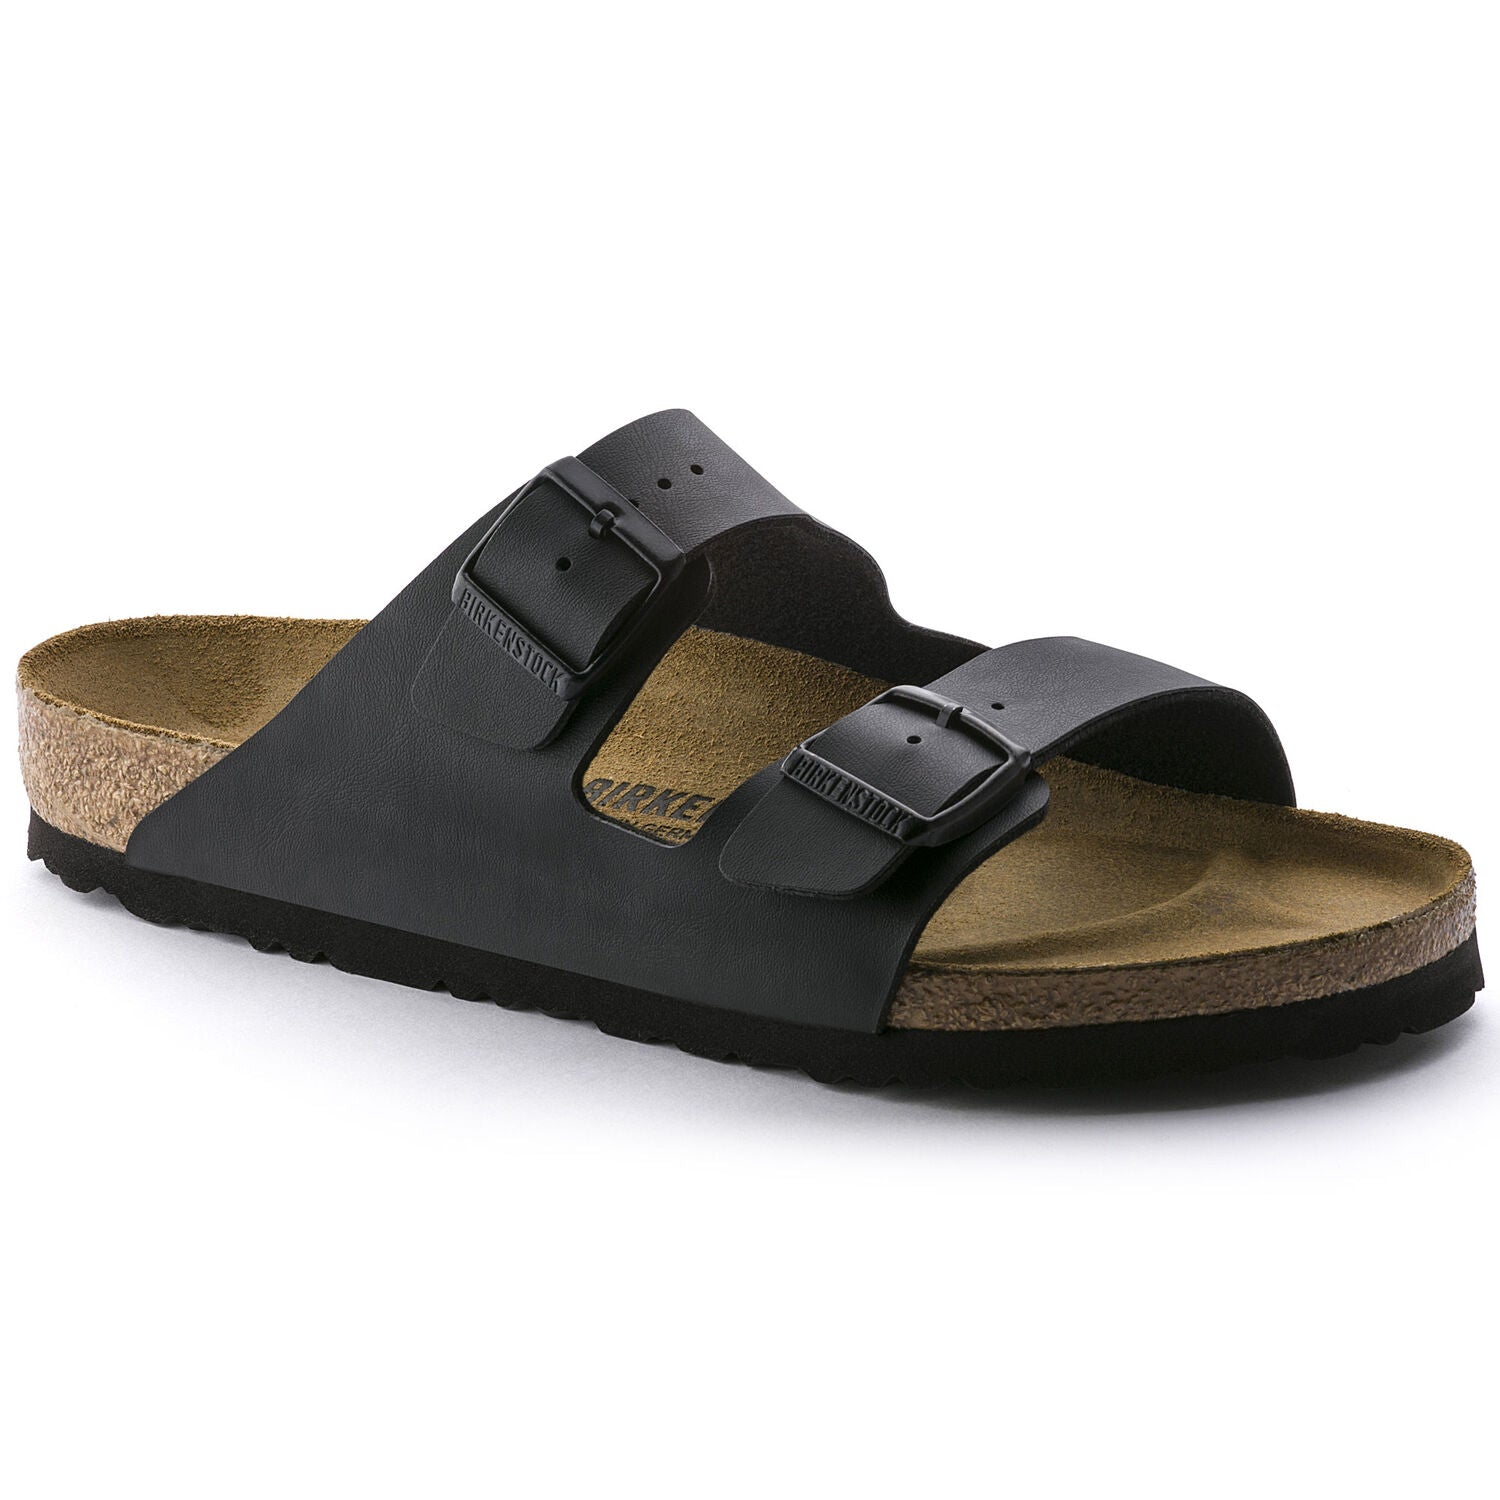 ARIZONA BIRKO-FLOR - BLACK (Narrow Fit)